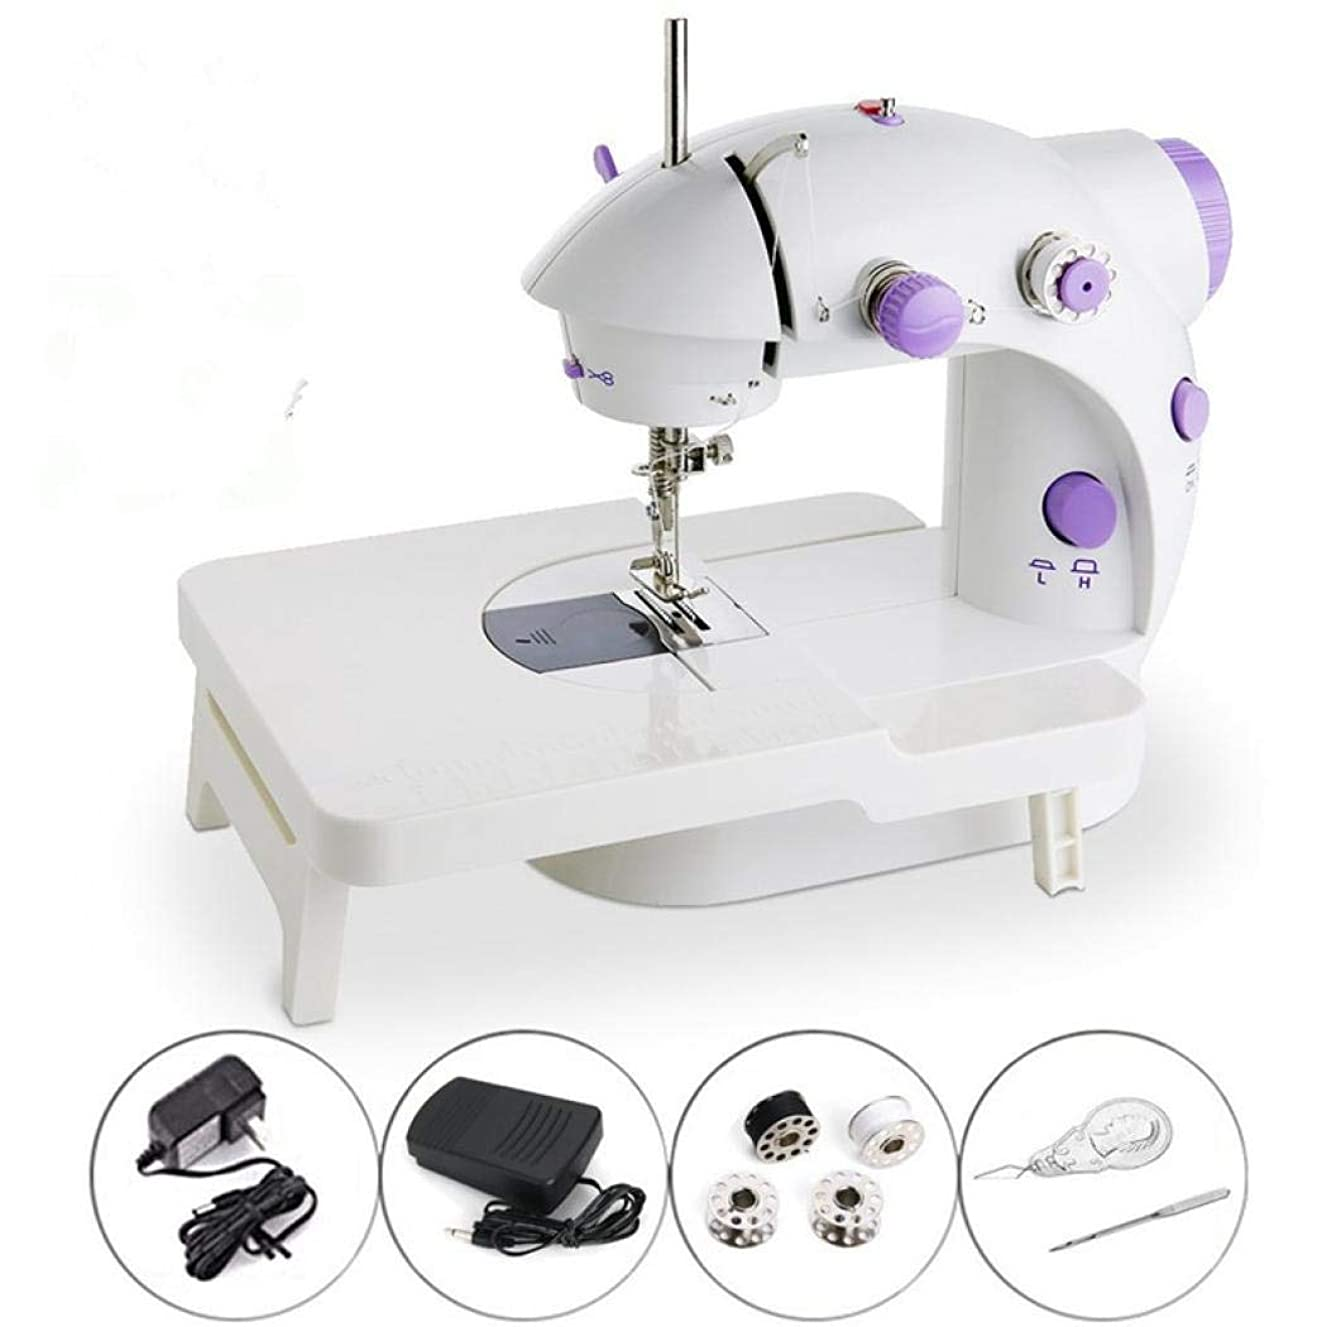 Portable Mini Sewing Machine,SCHANIN Mini Portable Electric Sewing Machine with Lamp and Thread Cutter, High Low Speeds, Battery or Adapter Power Supplies Purple